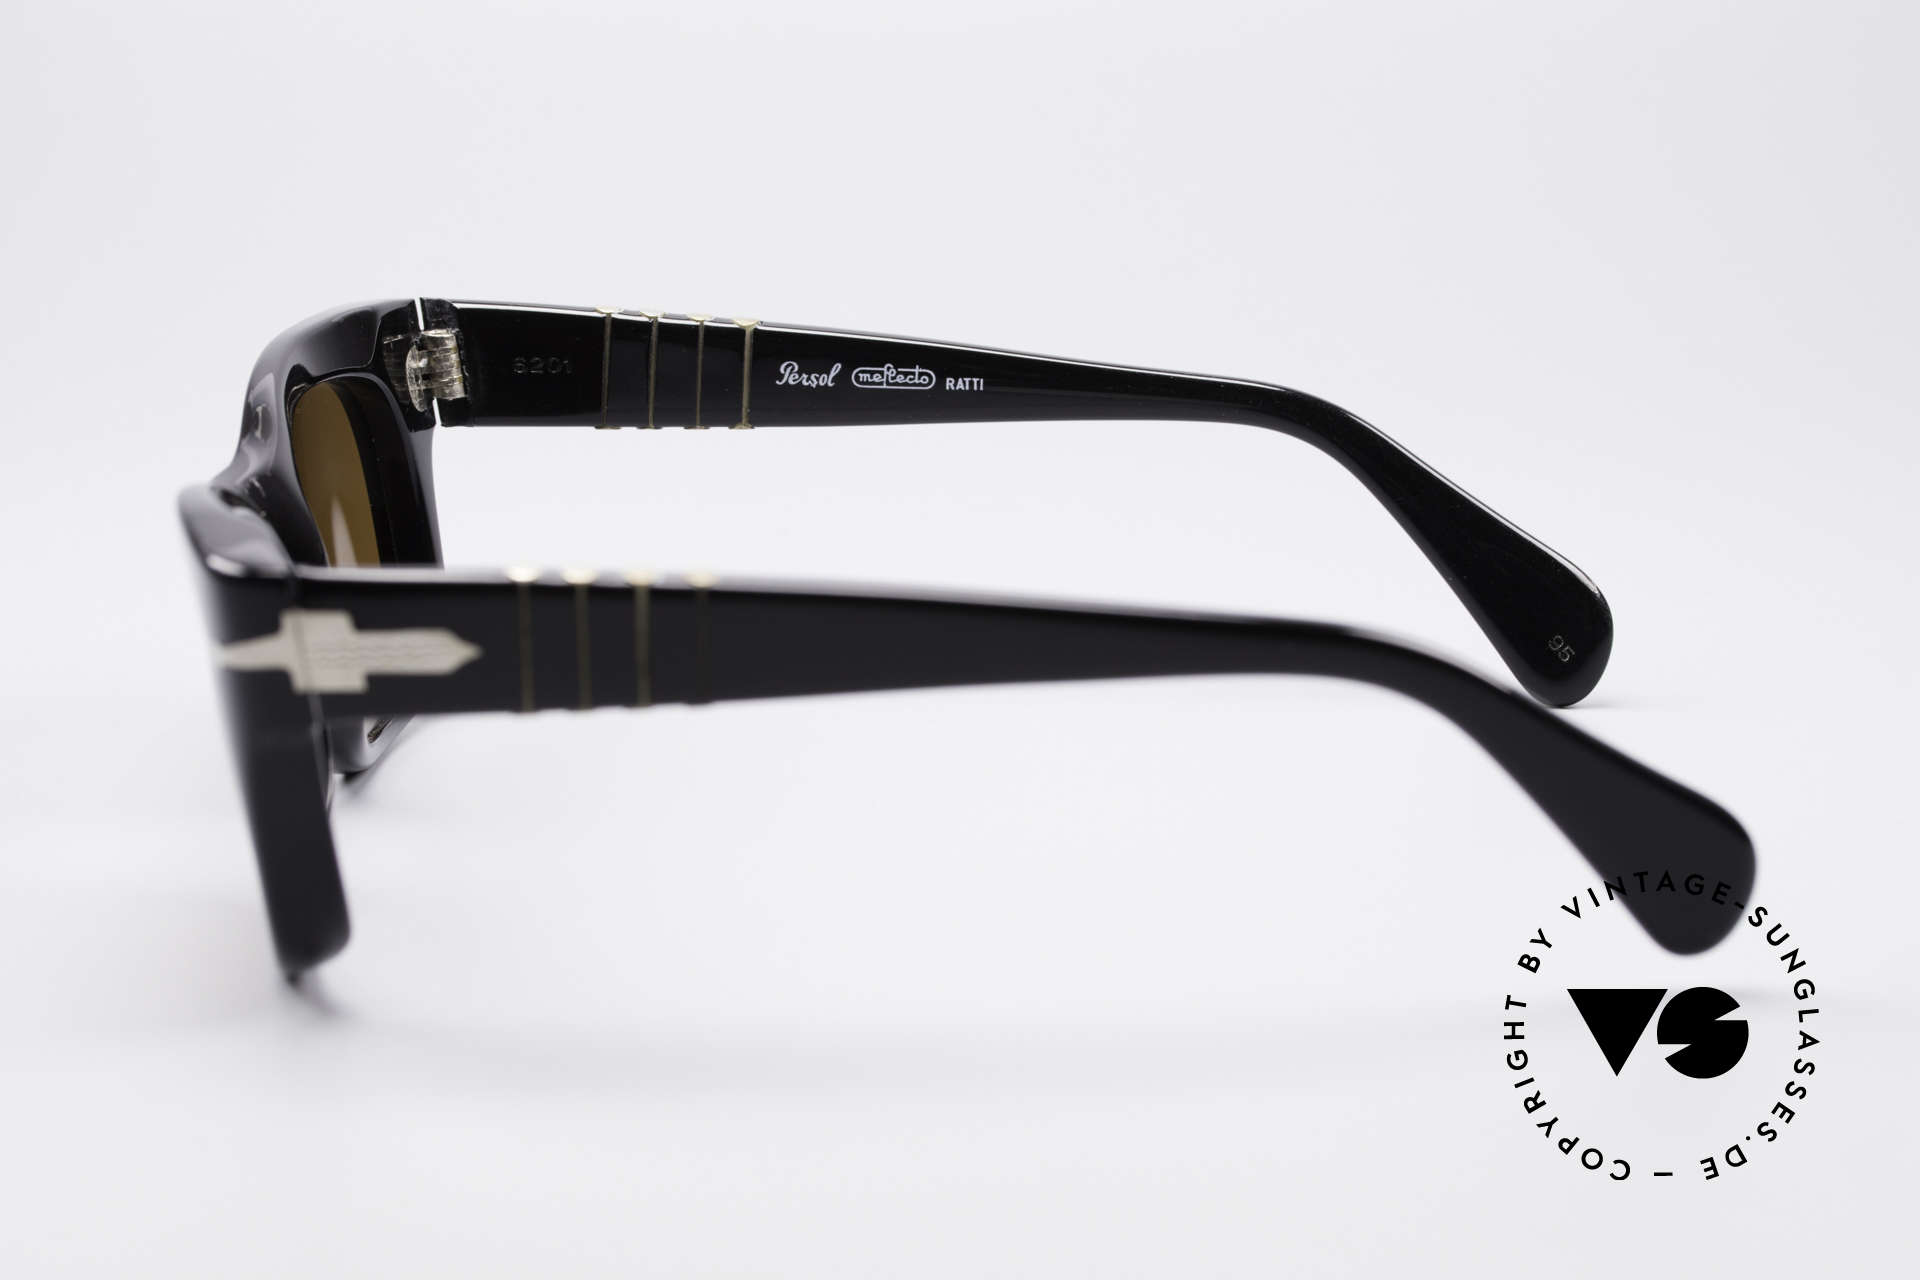 Persol 6201 Ratti Identic 69202 Ratti, unworn condition (much sought-after collector's item), Made for Men